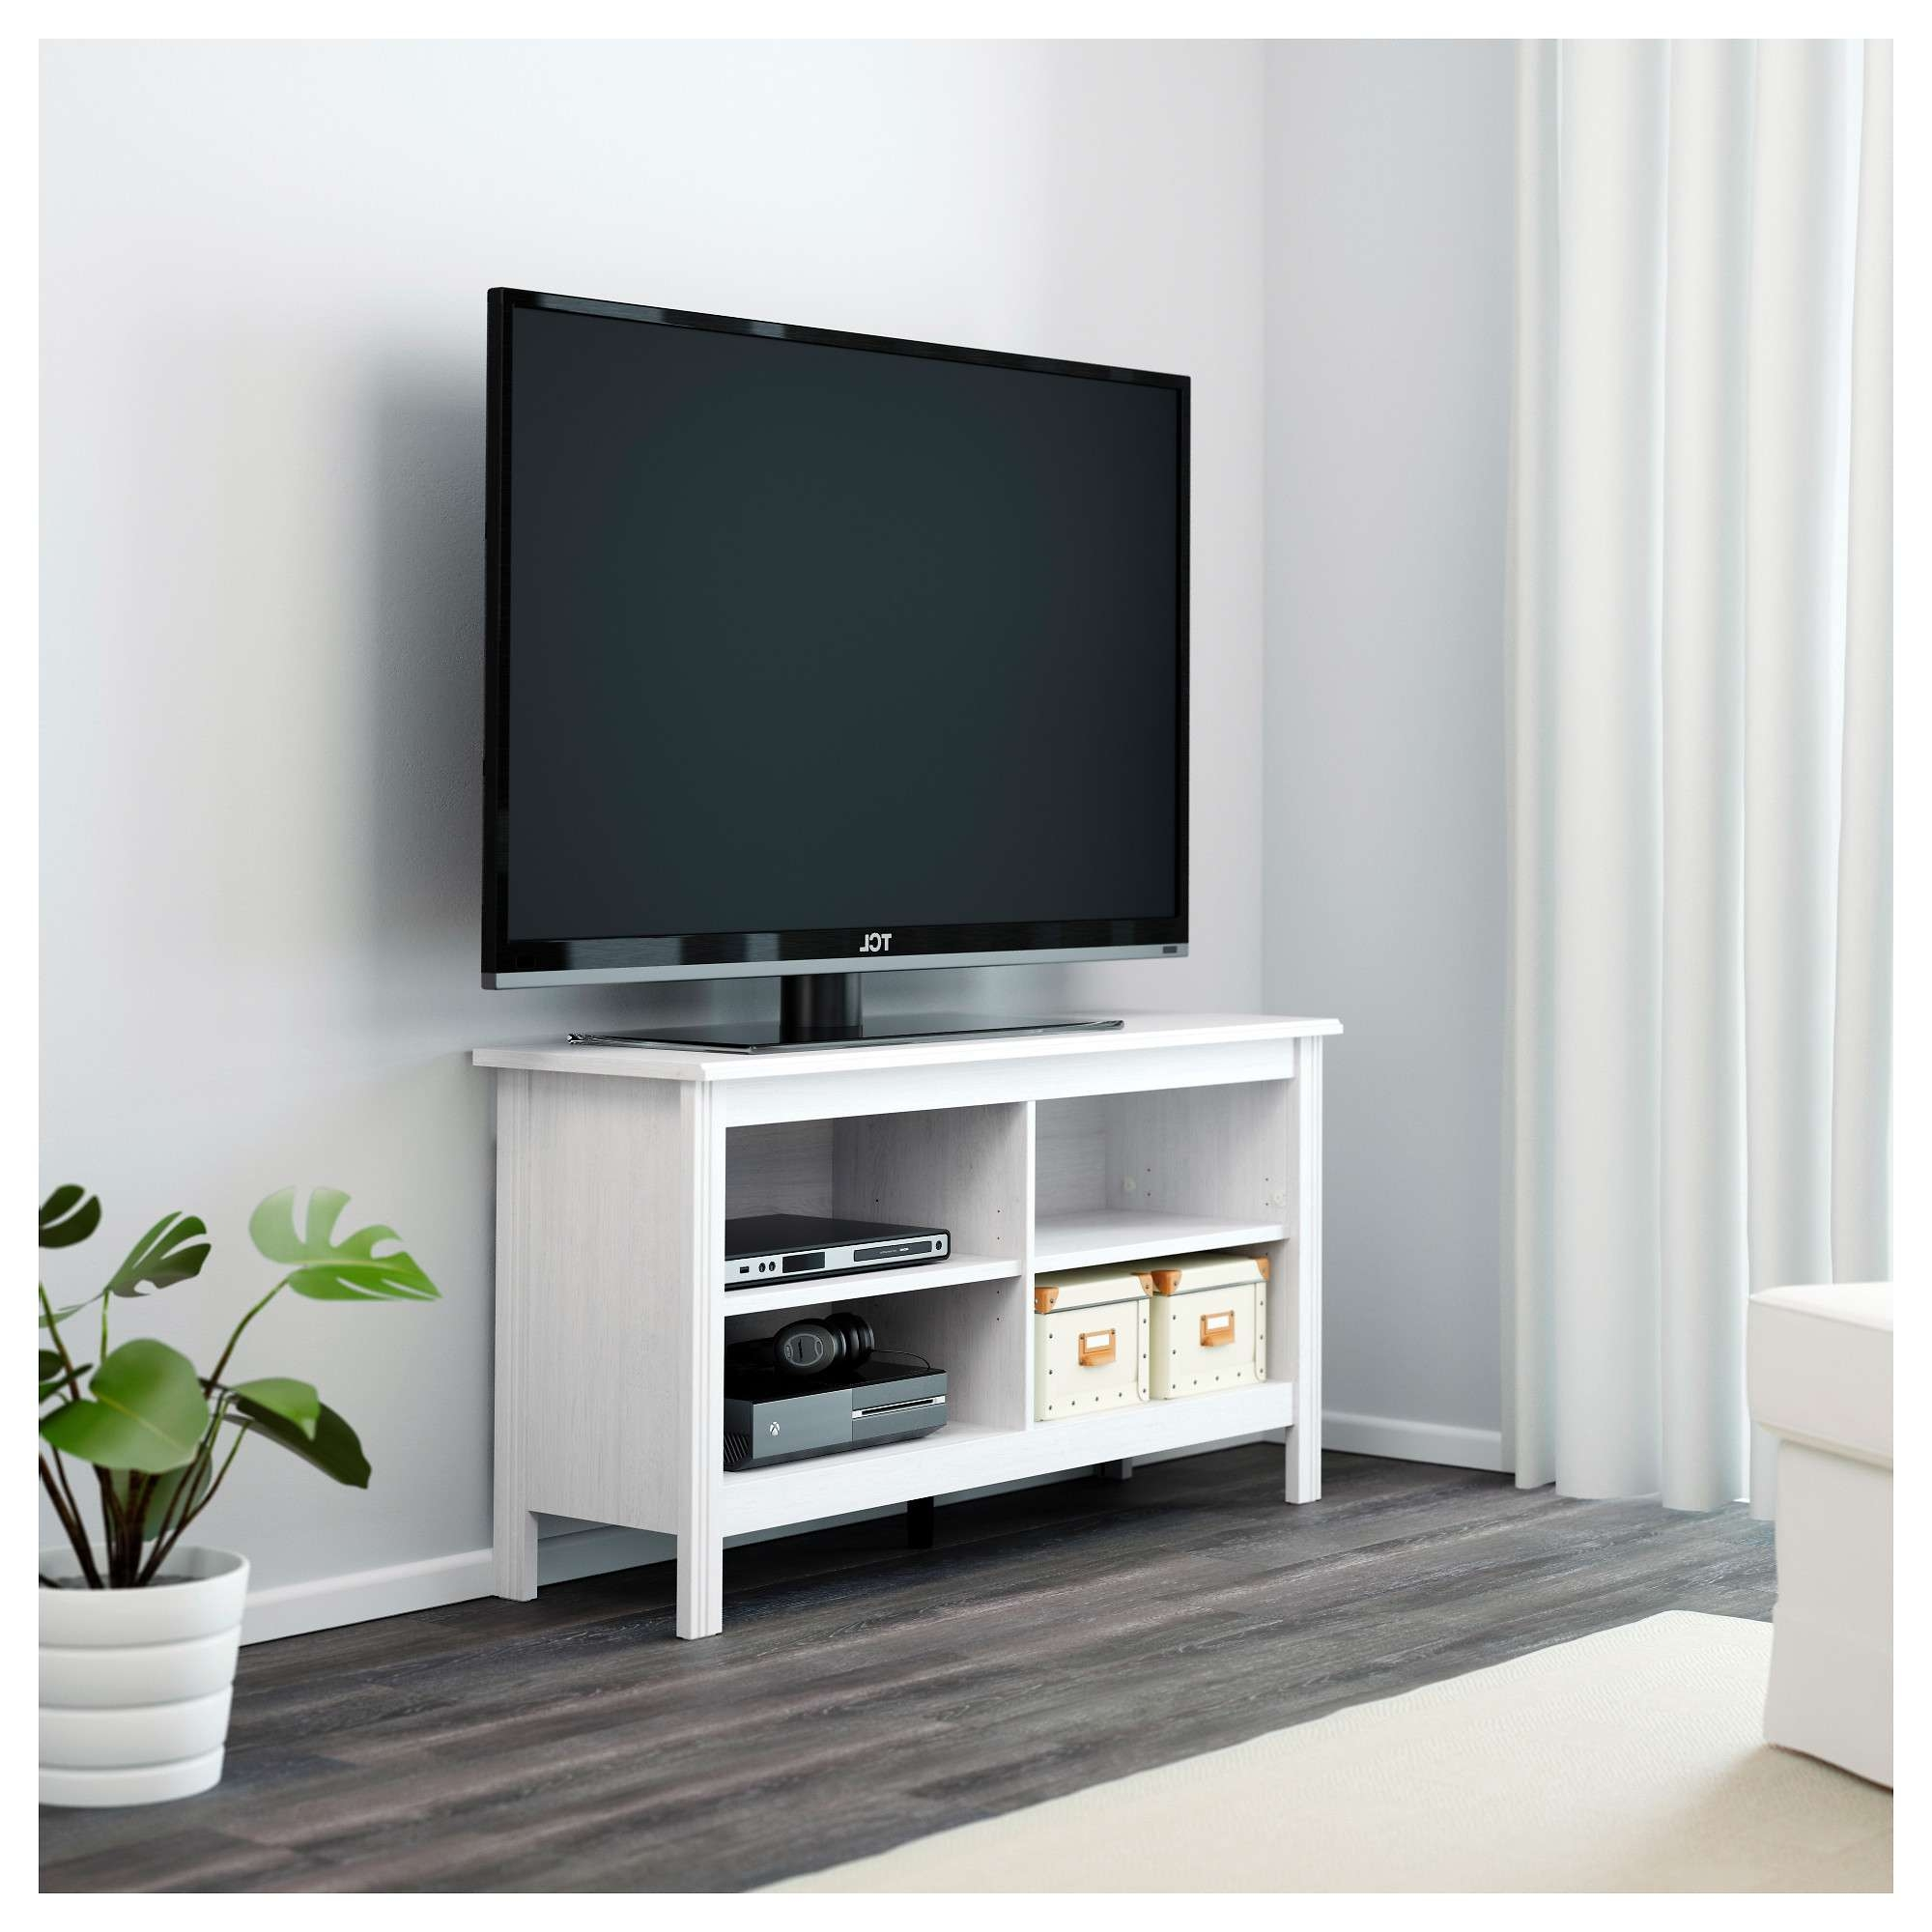 Ikea Tv Stan ~ Theshaggsonline Within Tv Stands At Ikea (View 2 of 15)